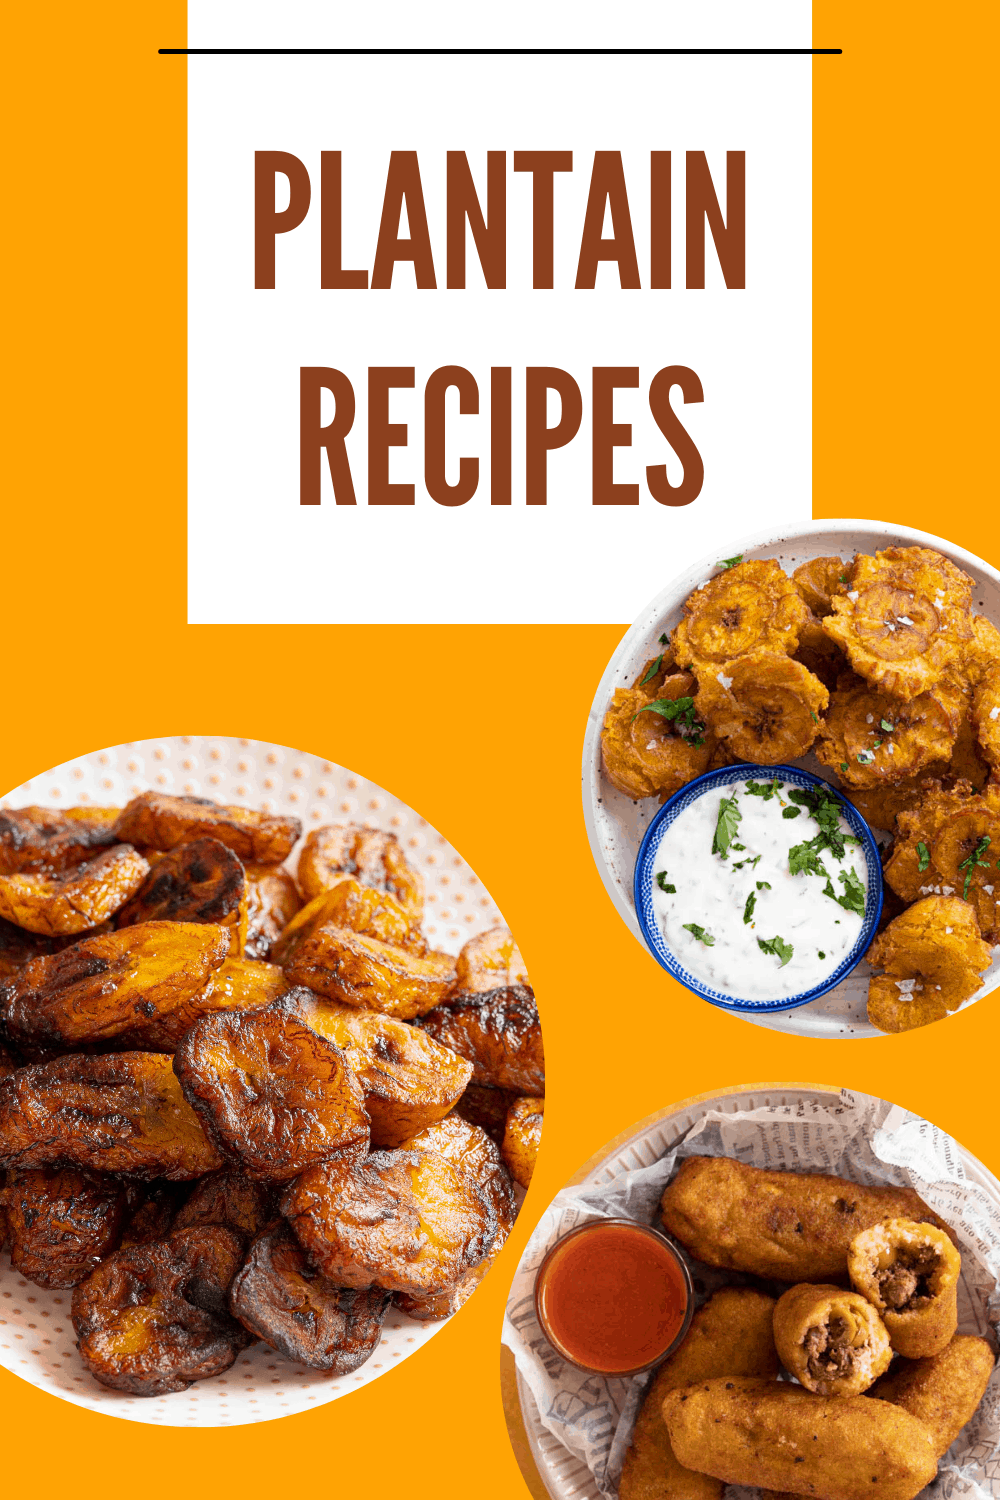 A collection of plantain recipes